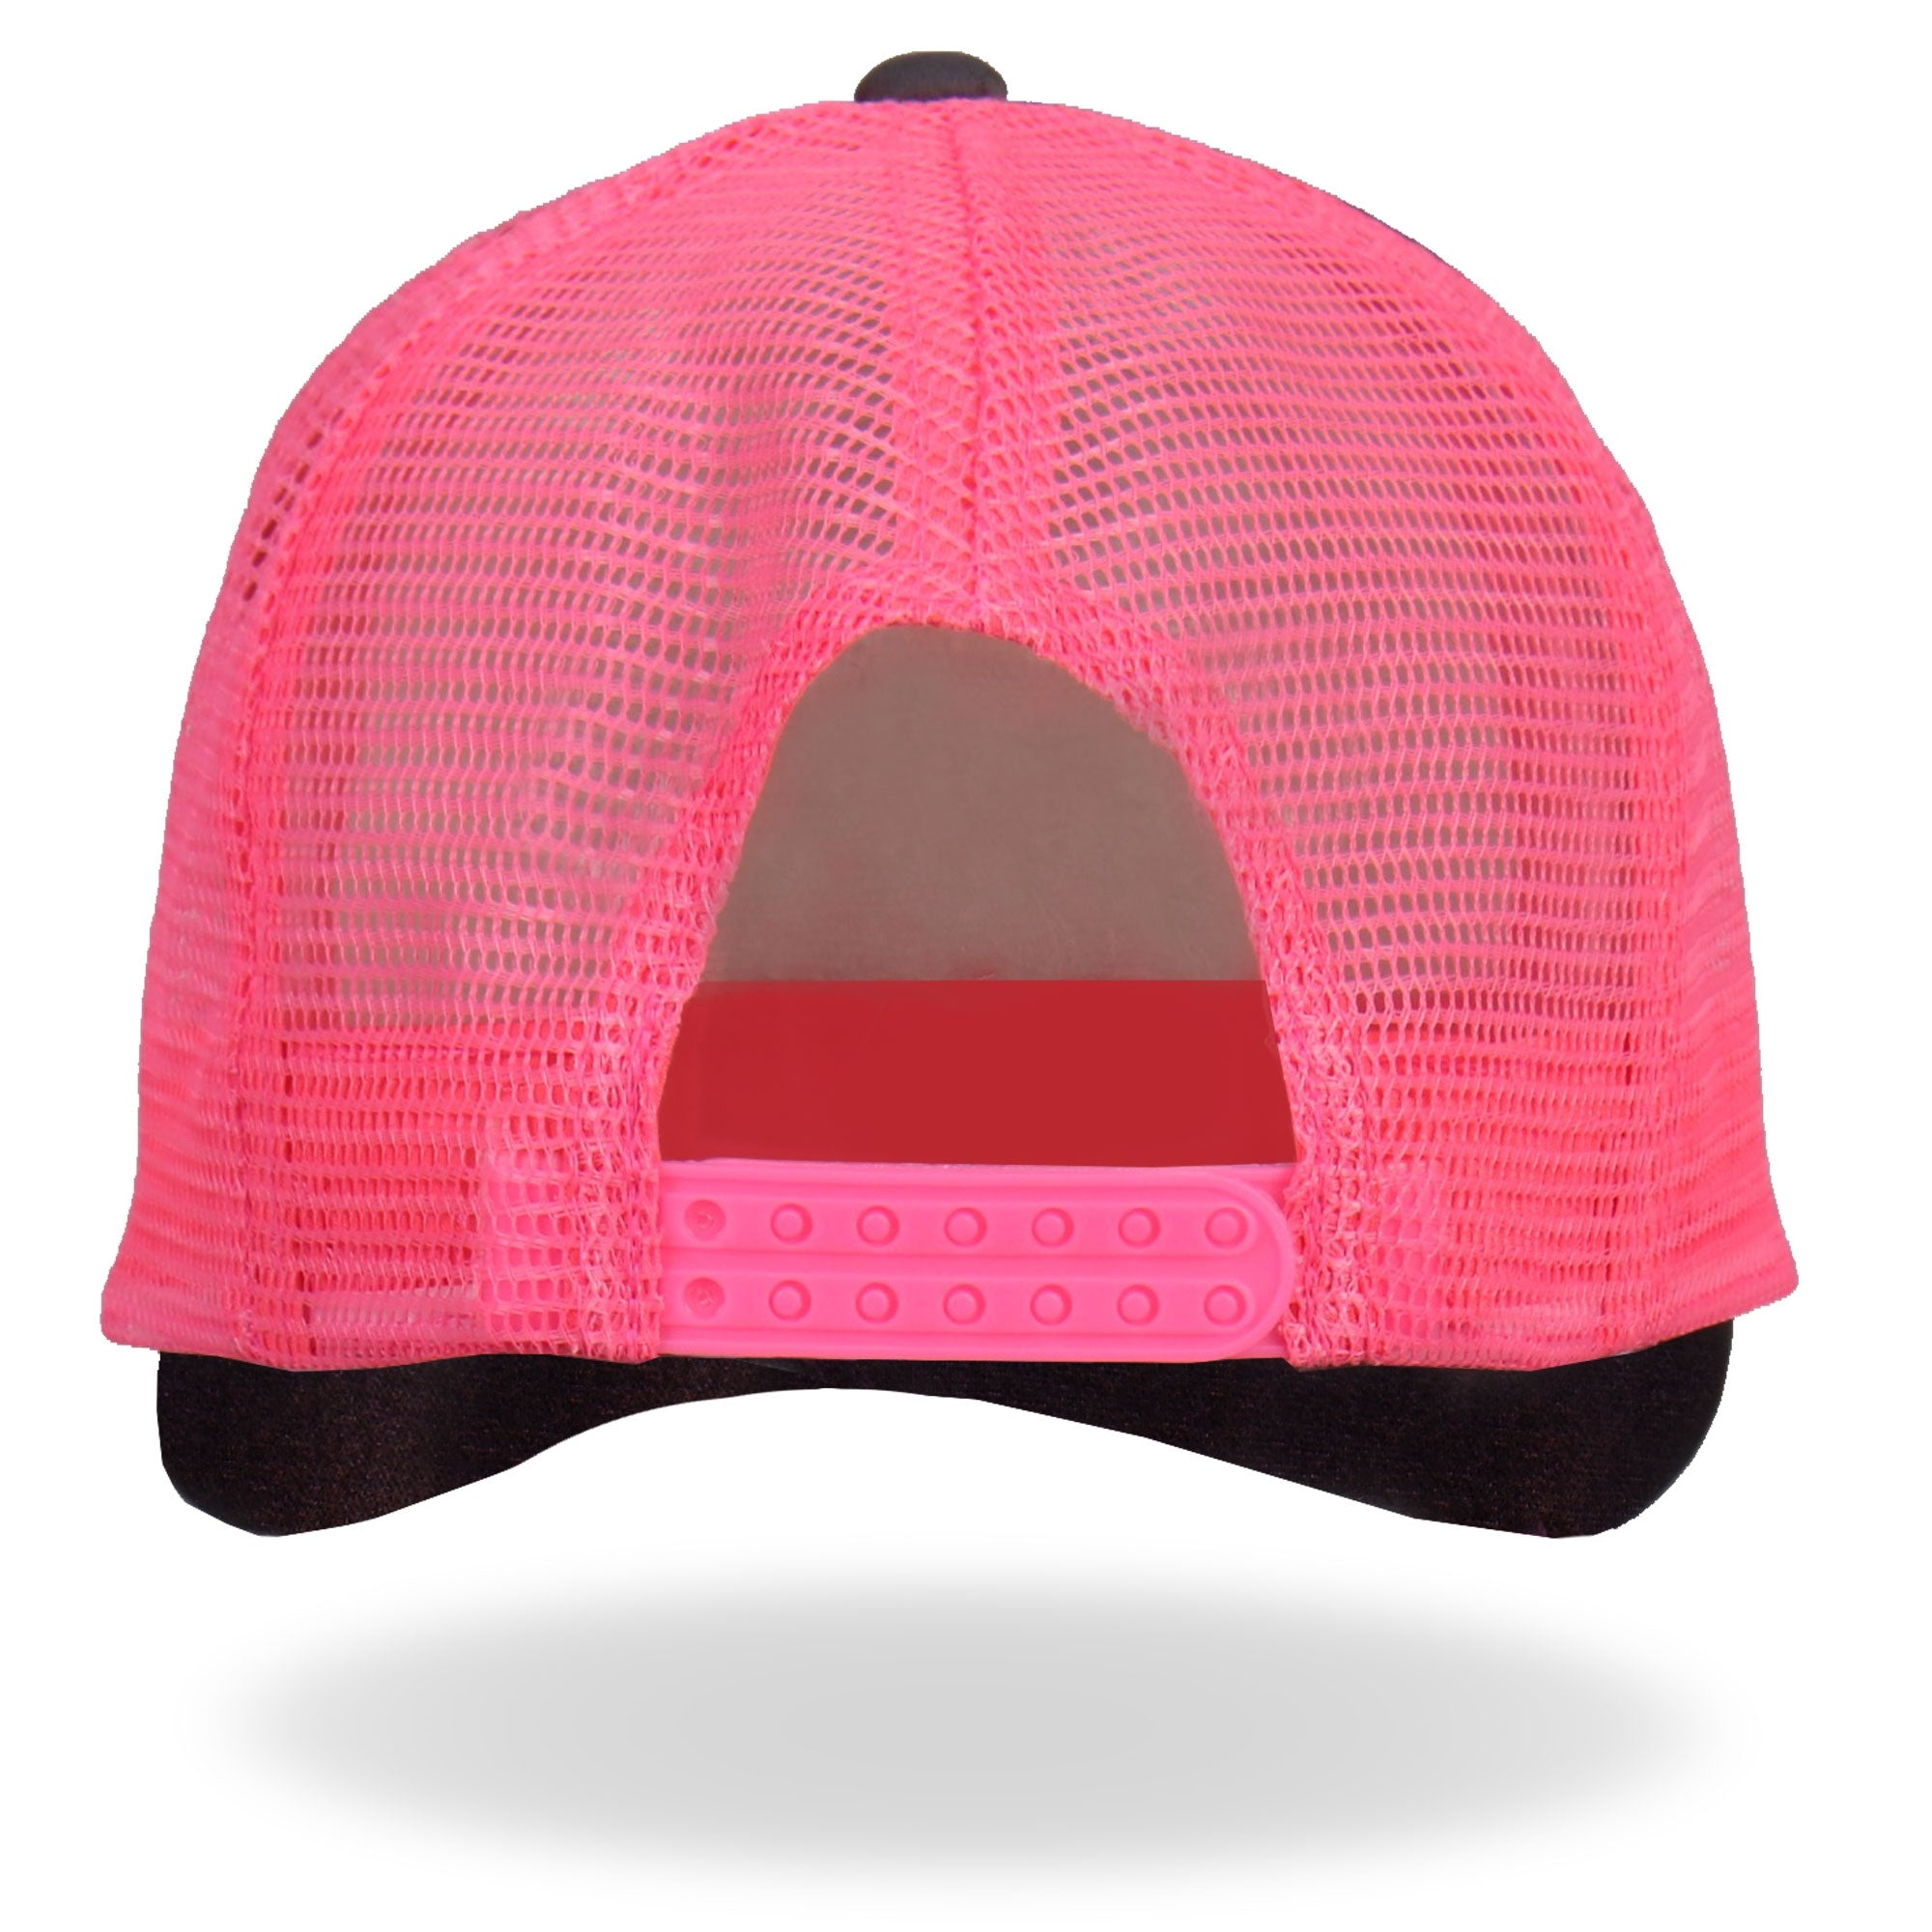 Hot Leathers Middle Finger Pink Trucker Hat